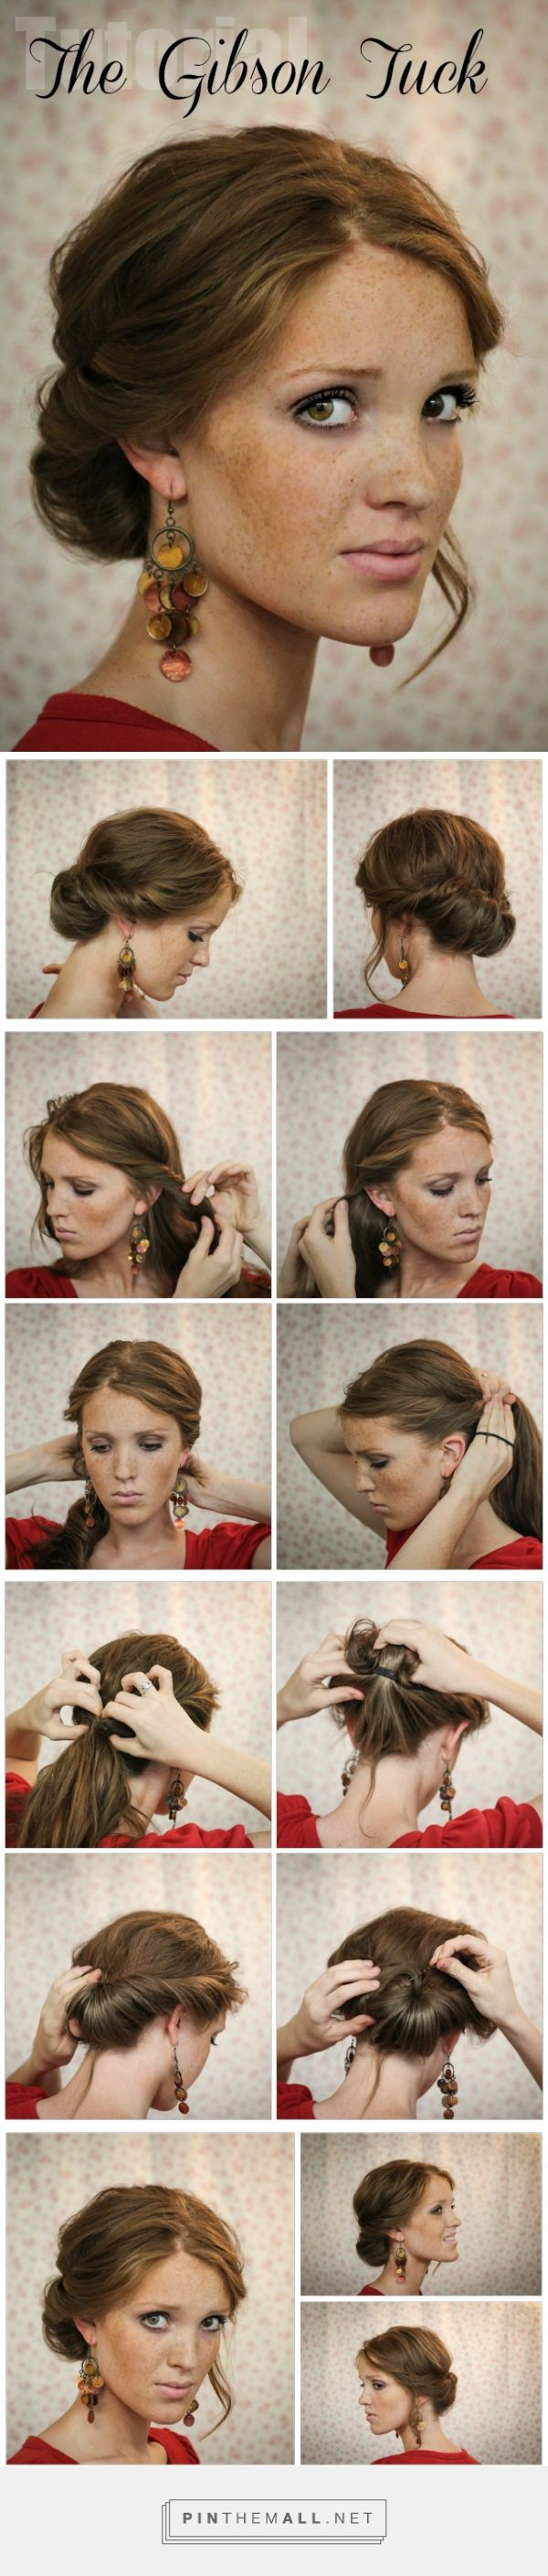 nice The Freckled Fox: Hair Tutorial// The Gibson Tuck... - a grouped images picture by http://www.dana-haircuts.xyz/hair-tutorials/the-freckled-fox-hair-tutorial-the-gibson-tuck-a-grouped-images-picture/